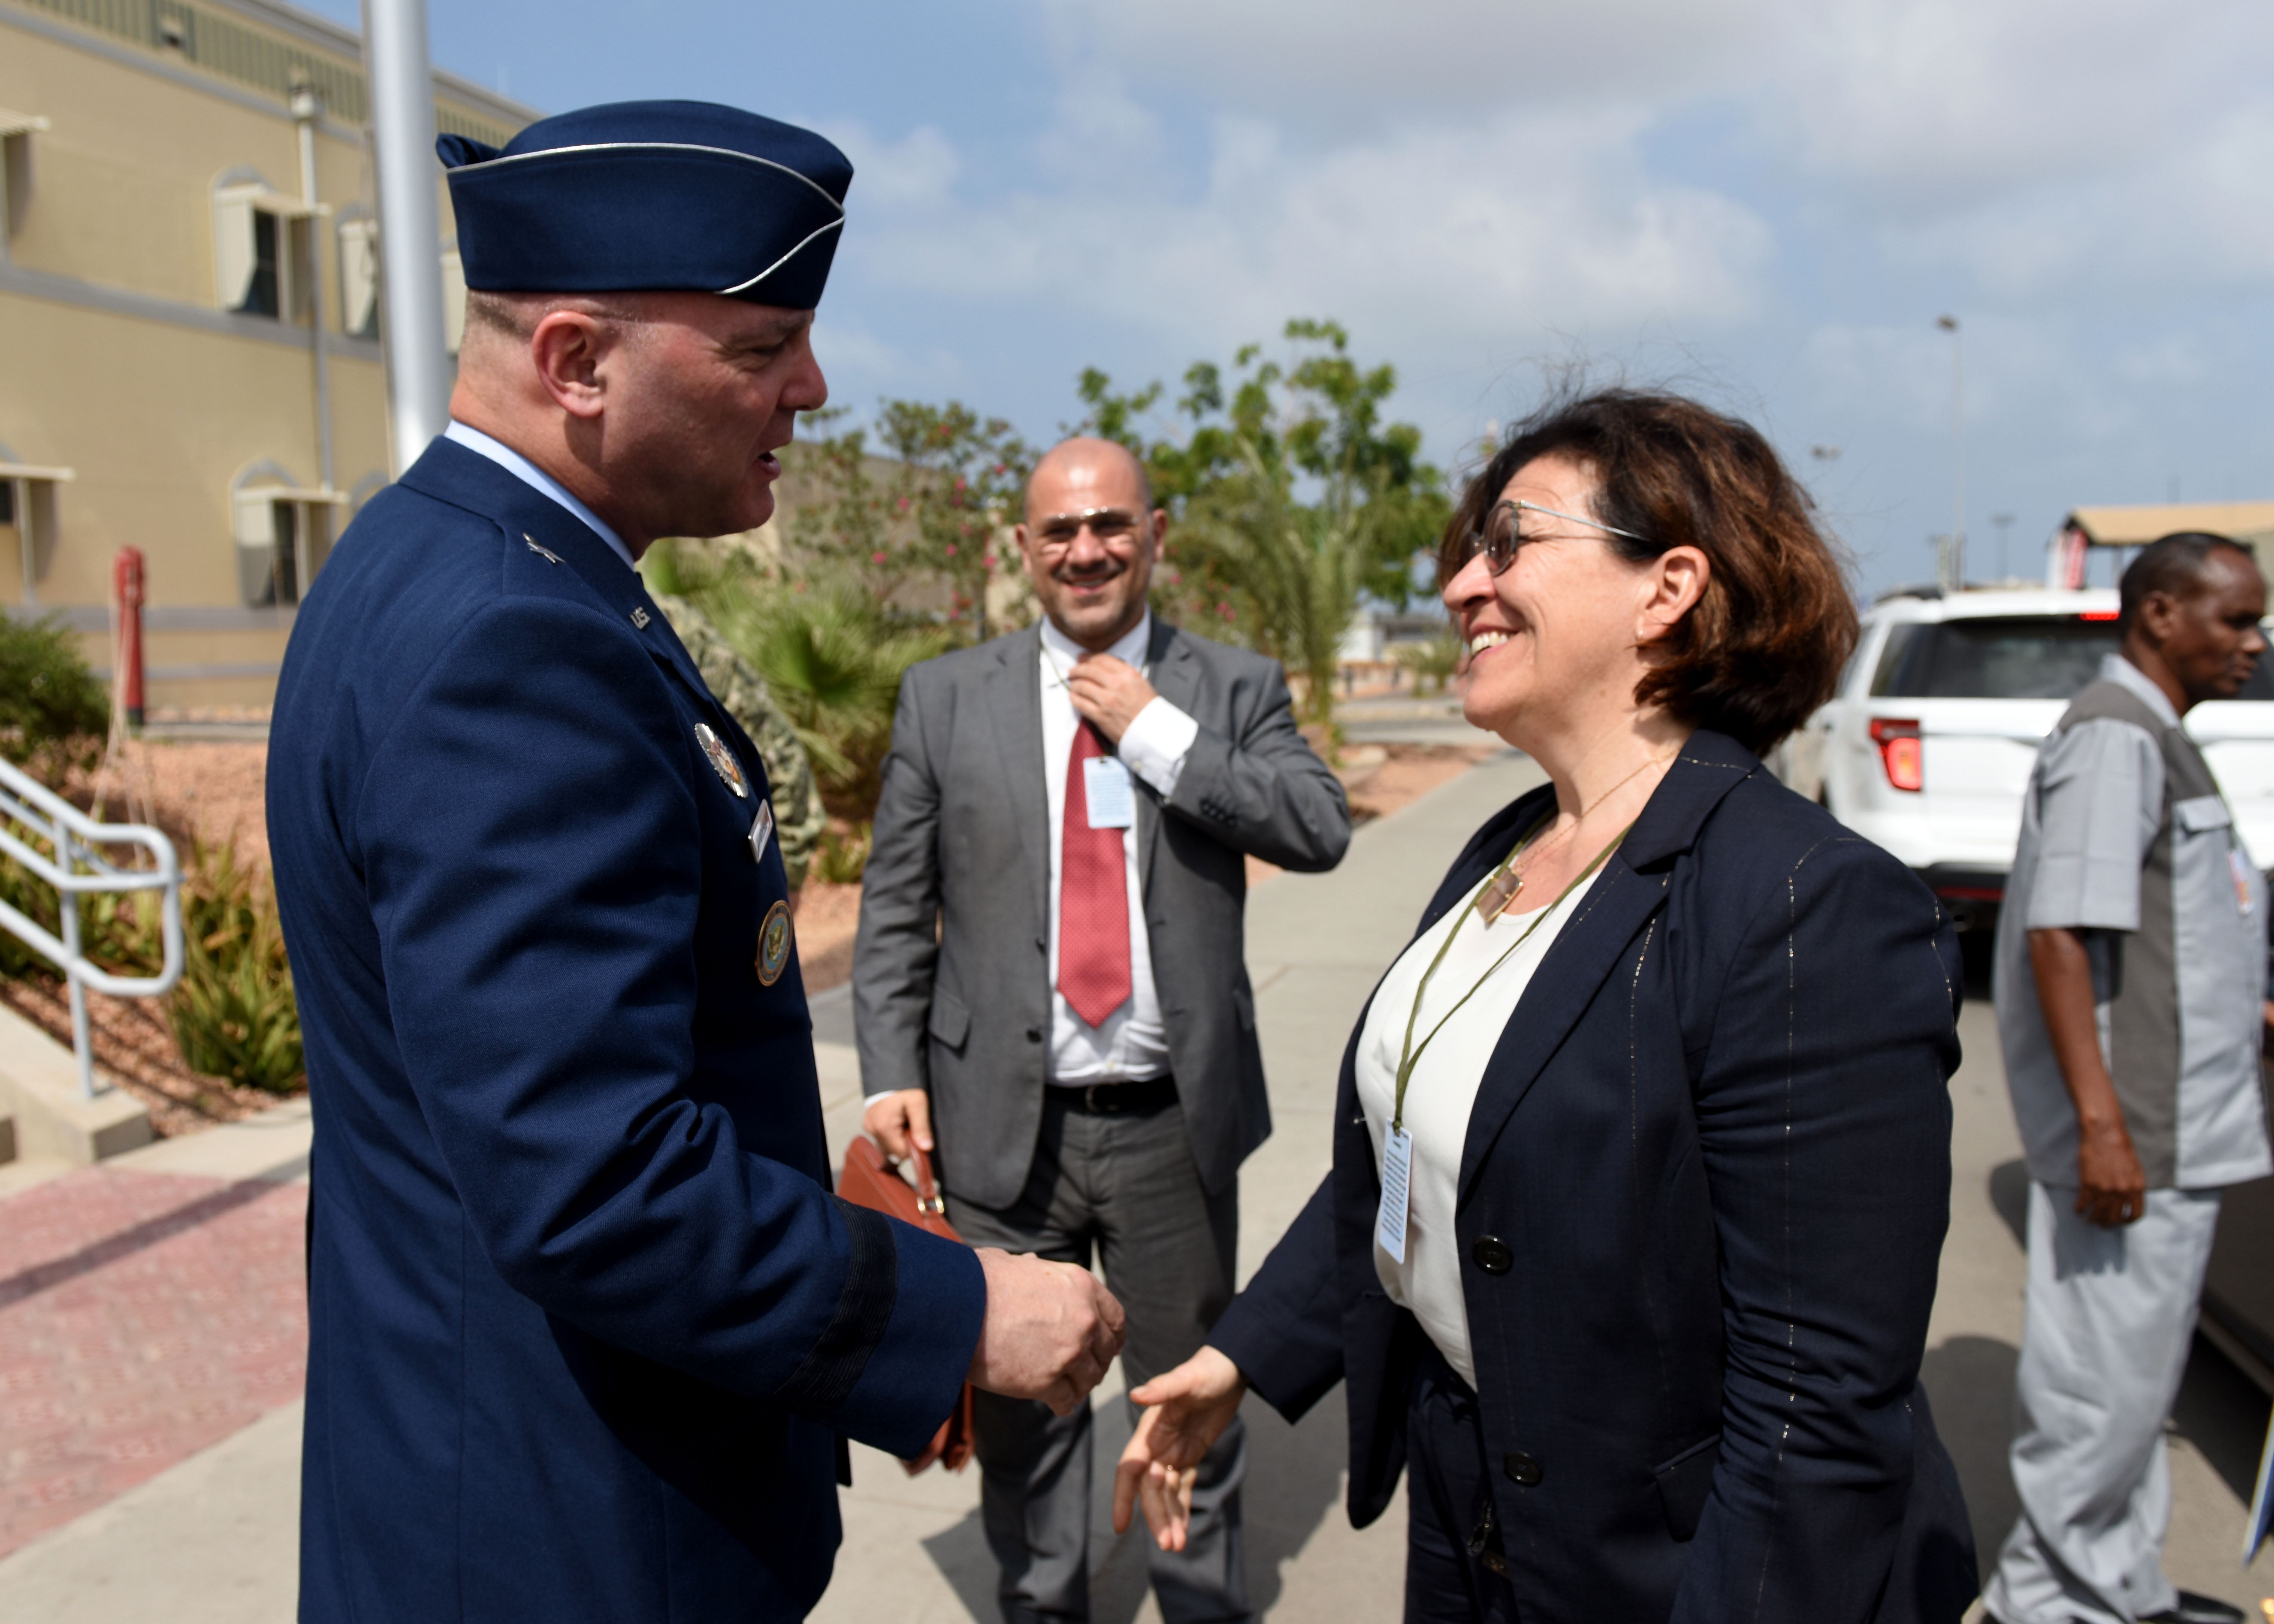 U.S. Air Force Brig. Gen. James R. Kriesel, left, deputy commanding general of Combined Joint Task Force-Horn of Africa (CJTF-HOA), greets Elisabetta Trenta, Italian Minister of Defense, during her visit to Camp Lemonnier, Djibouti, April 9, 2019. Trenta visited CJTF-HOA to gain insight on how U.S. forces operate in the combined joint operations area and to foster relations. (U.S. Air Force Photo by Staff Sgt. Franklin R. Ramos)